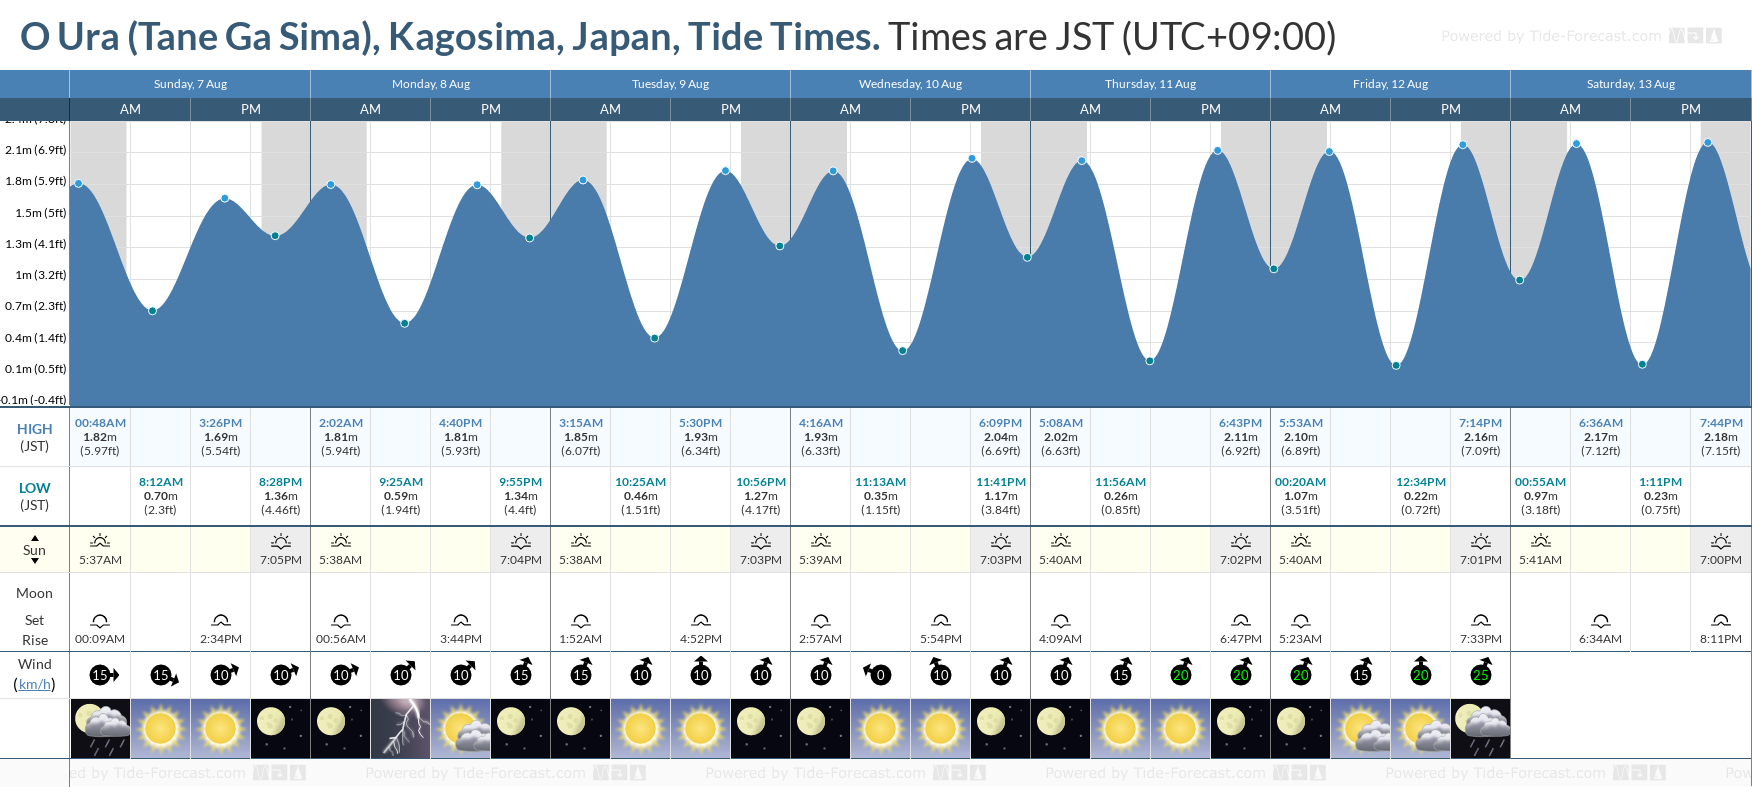 O Ura (Tane Ga Sima), Kagosima, Japan Tide Chart including high and low tide tide times for the next 7 days